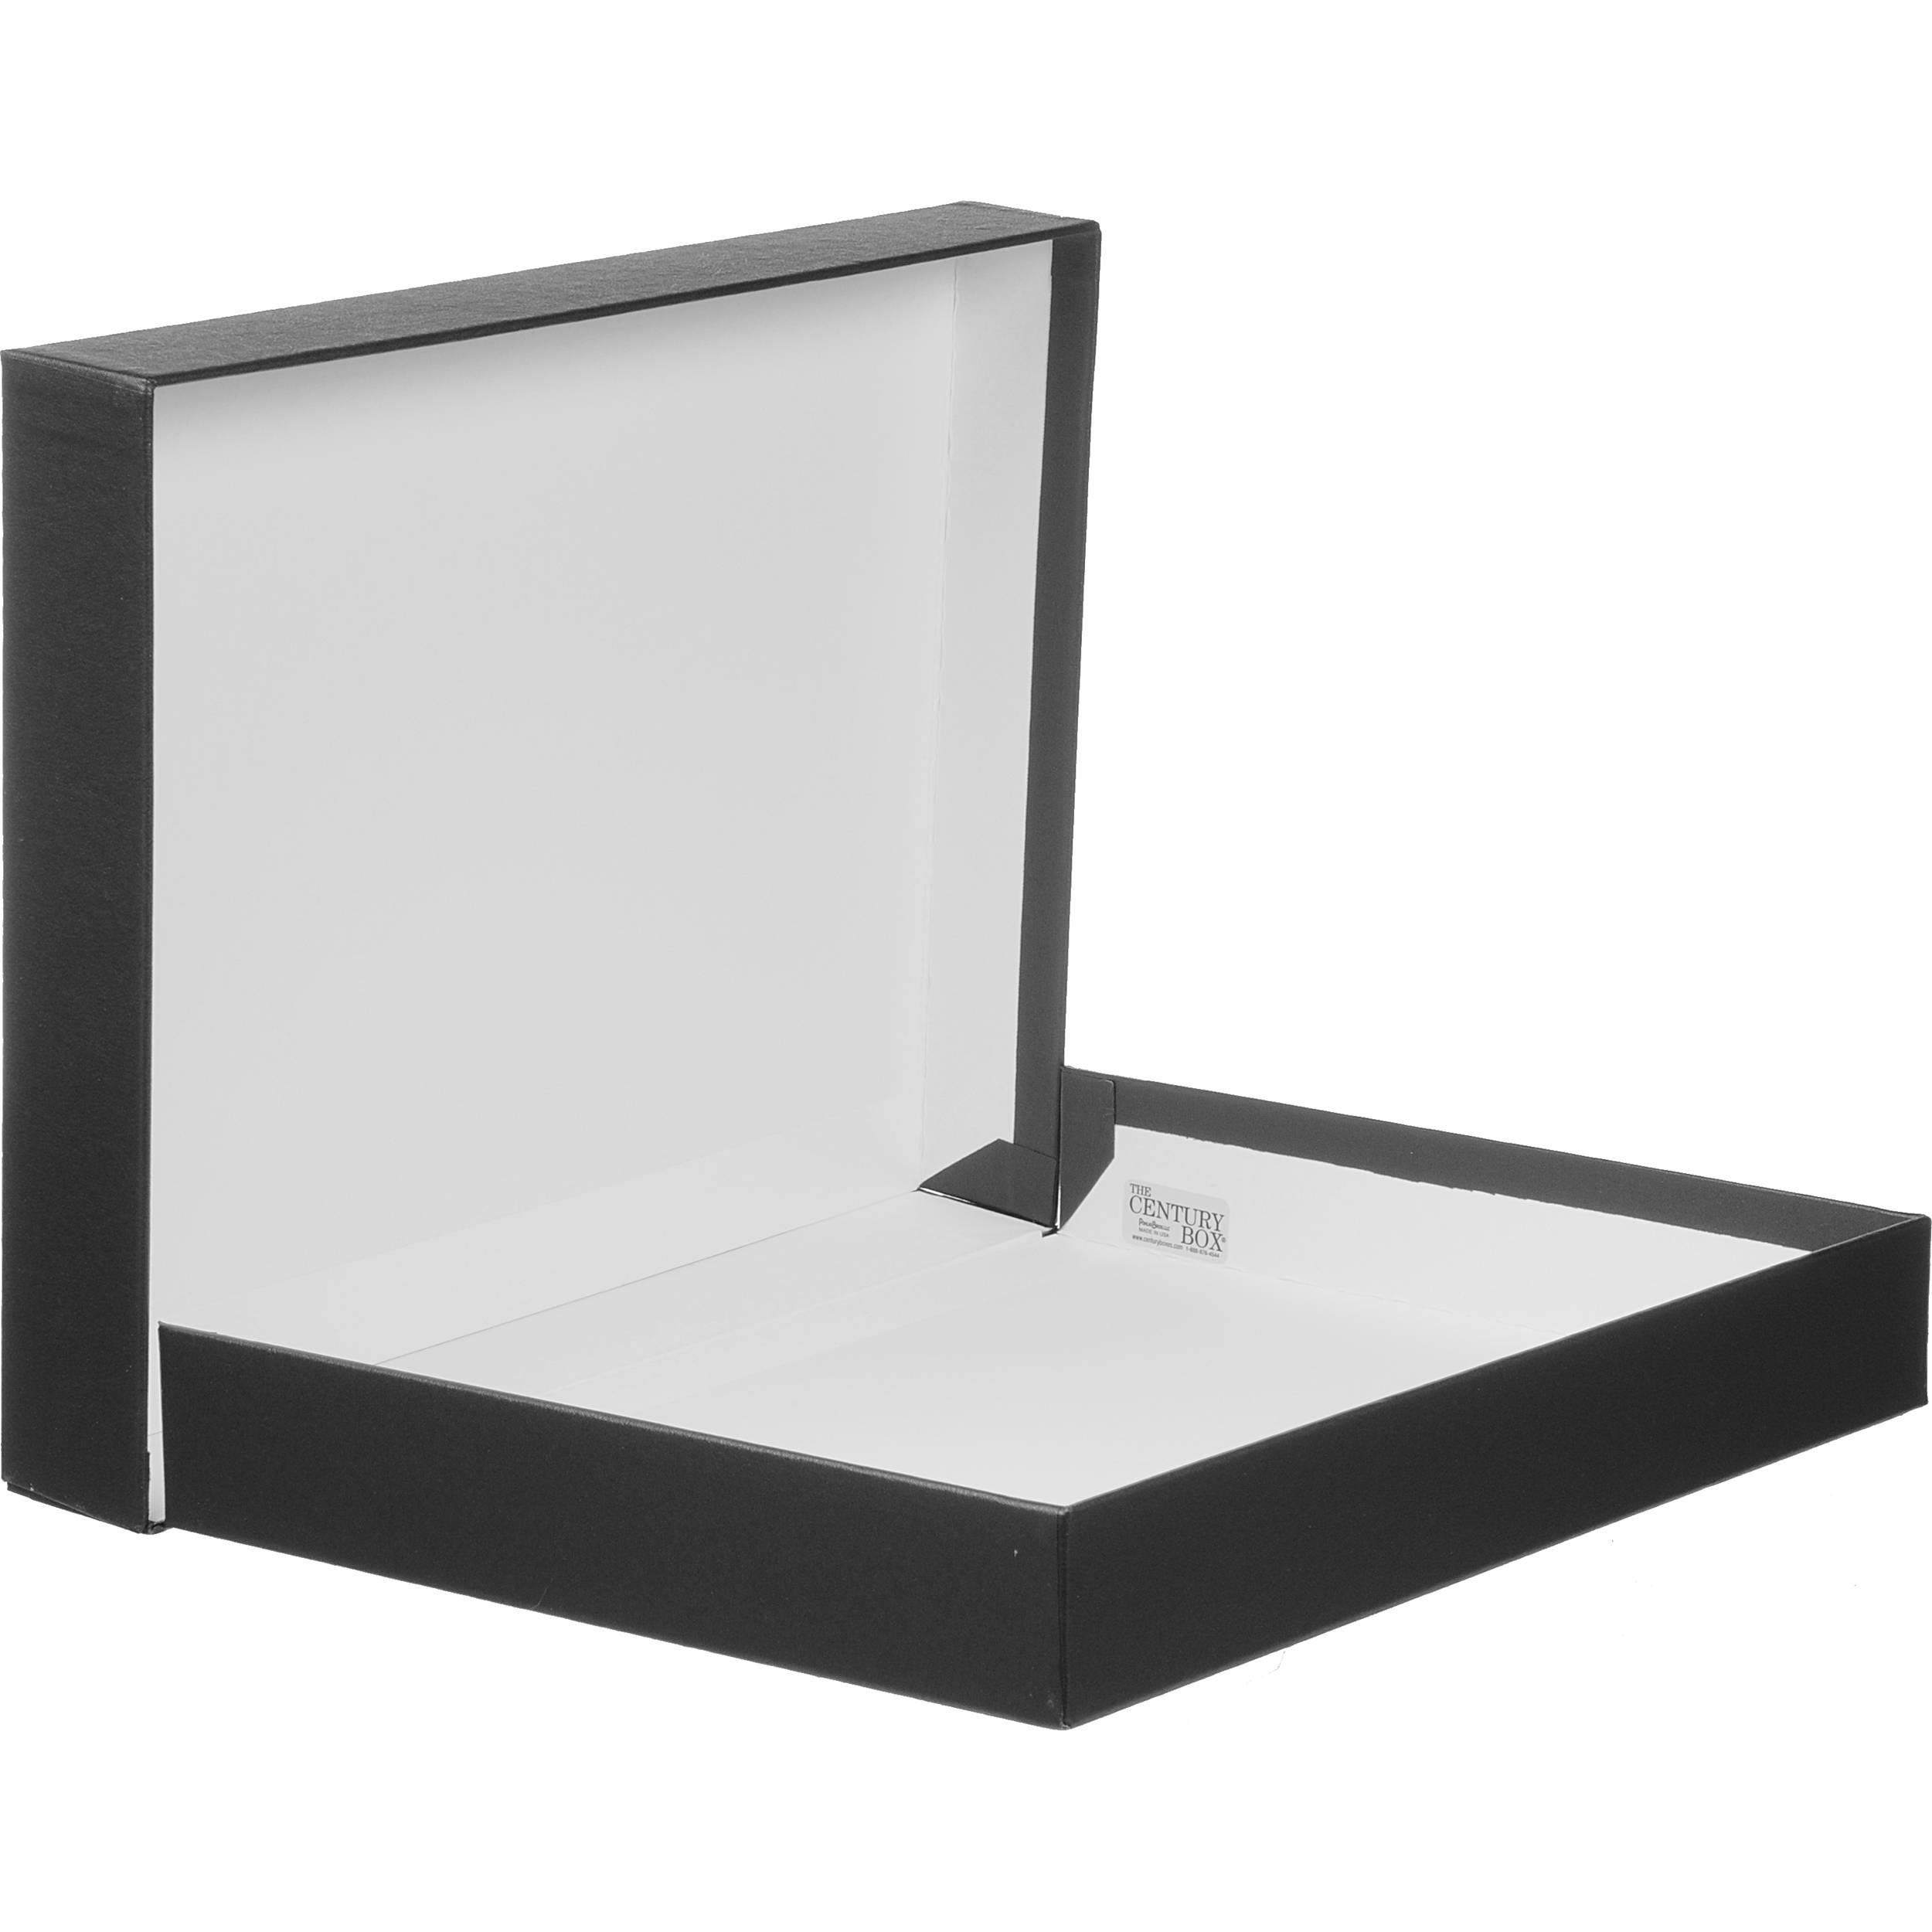 Prat Century Storage Box, One-Piece Clamshell Construction with Fabric Cover, Lined with Acid-Free White Paper, 24 X 20 X 2 inches, Black (1124)